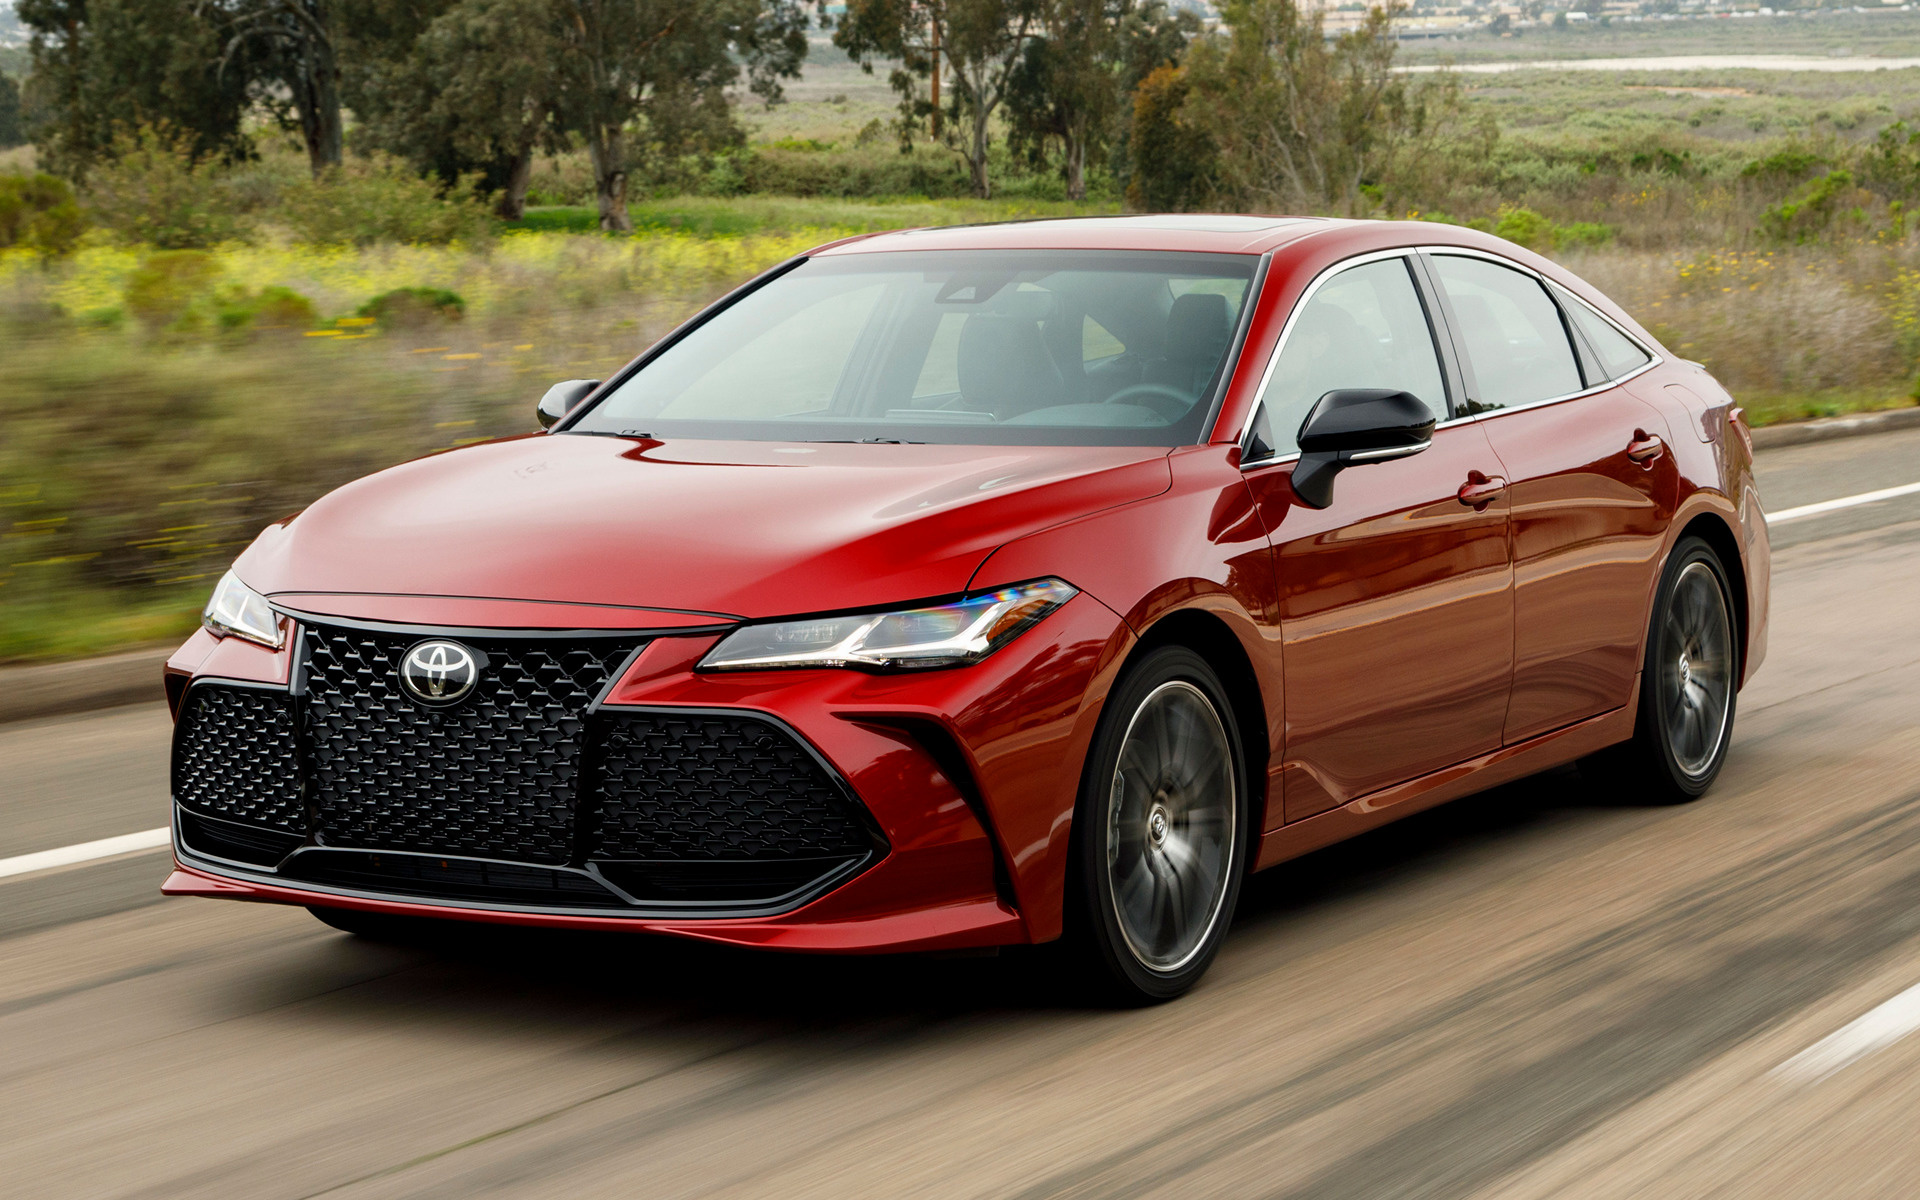 2019 Toyota Avalon Sport Styling Wallpapers And Hd